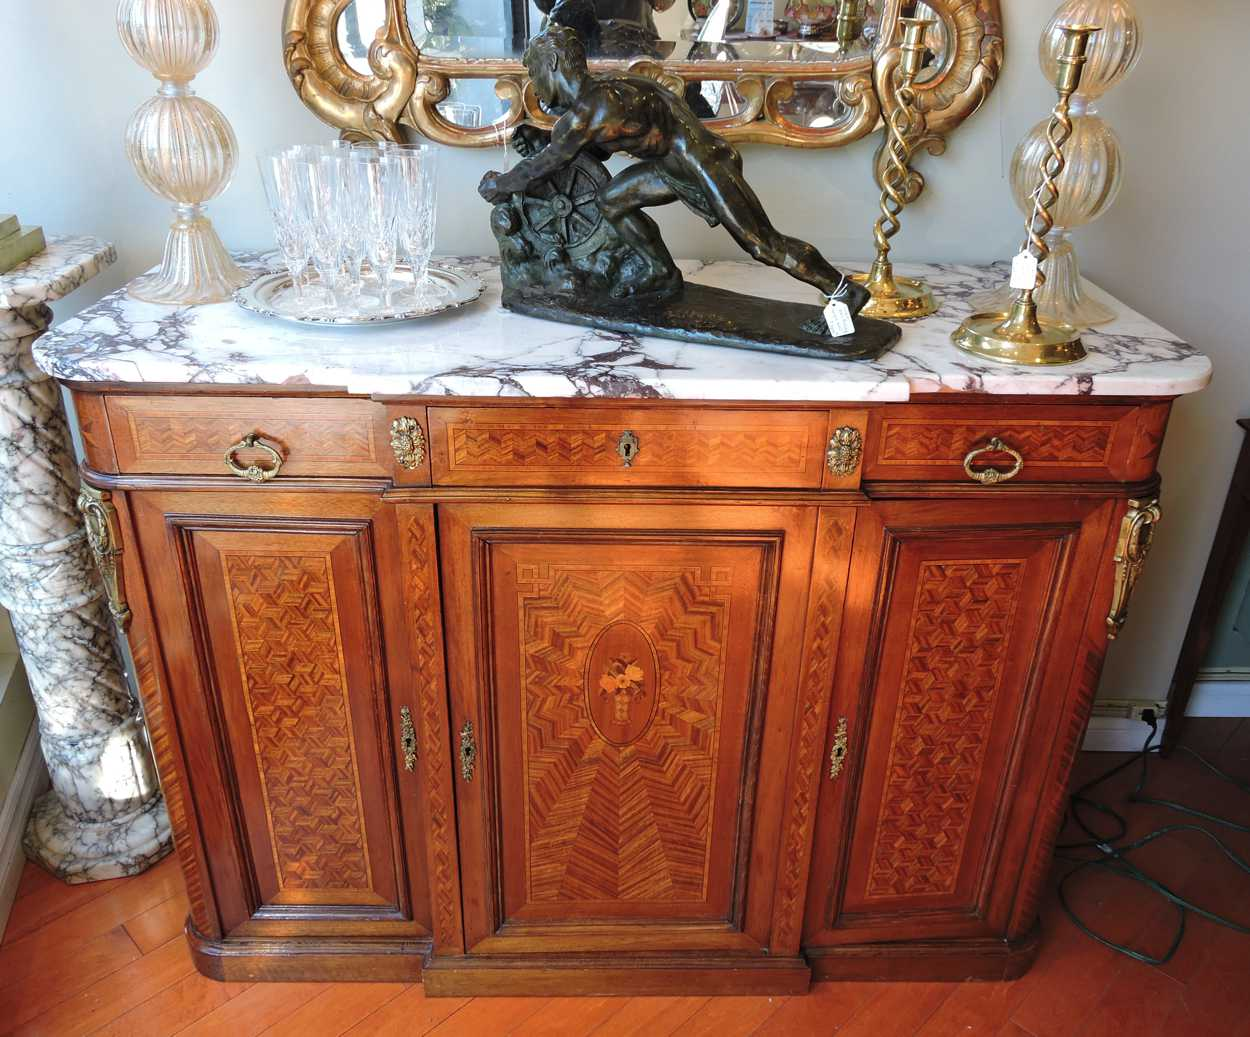 Marble Top Buffet ~ French parquetry inlaid with marble top buffet server c